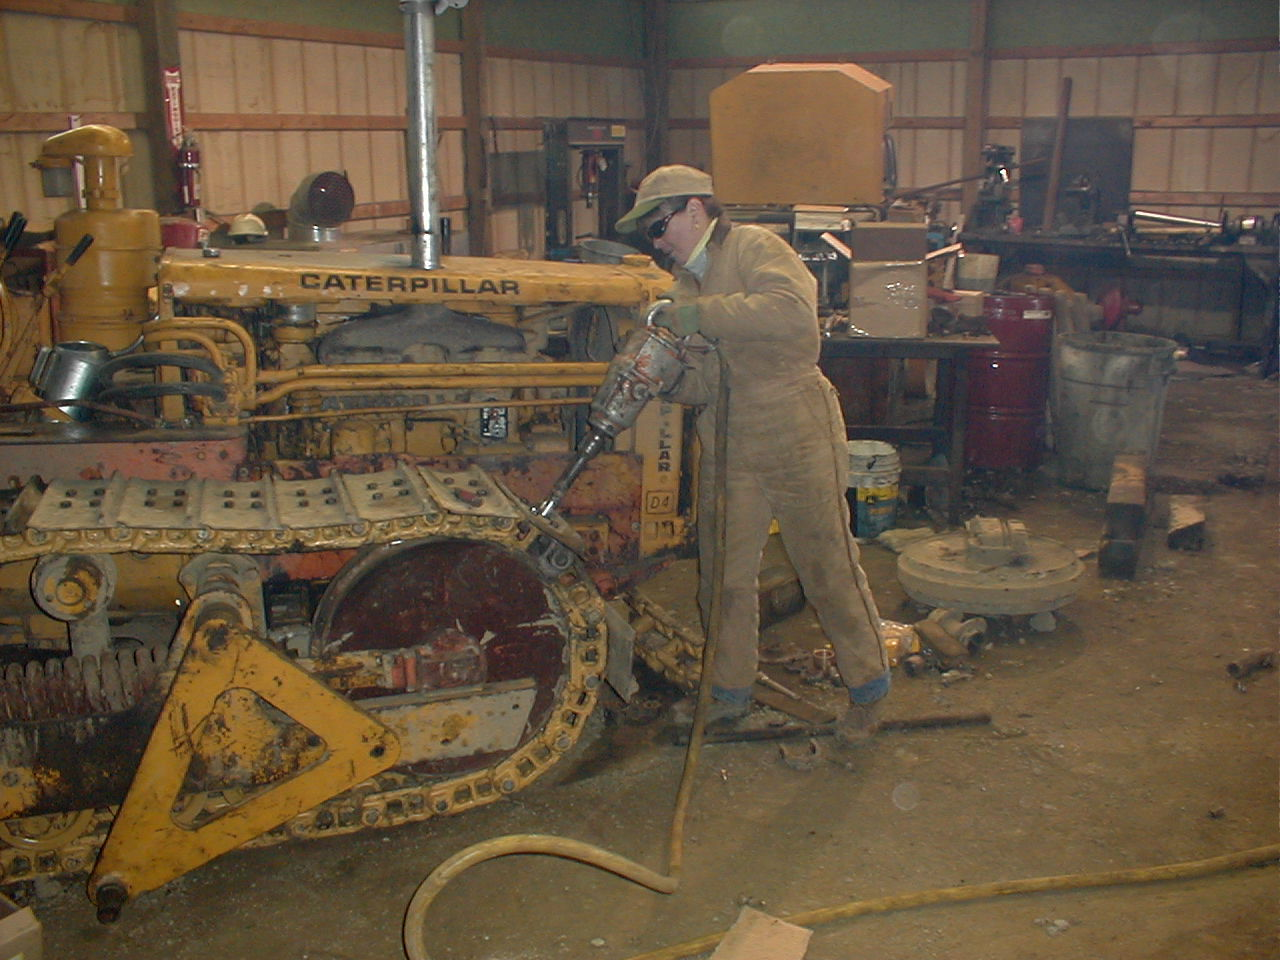 Nancy McDonnell works on restoring her 1956 Cat D4.